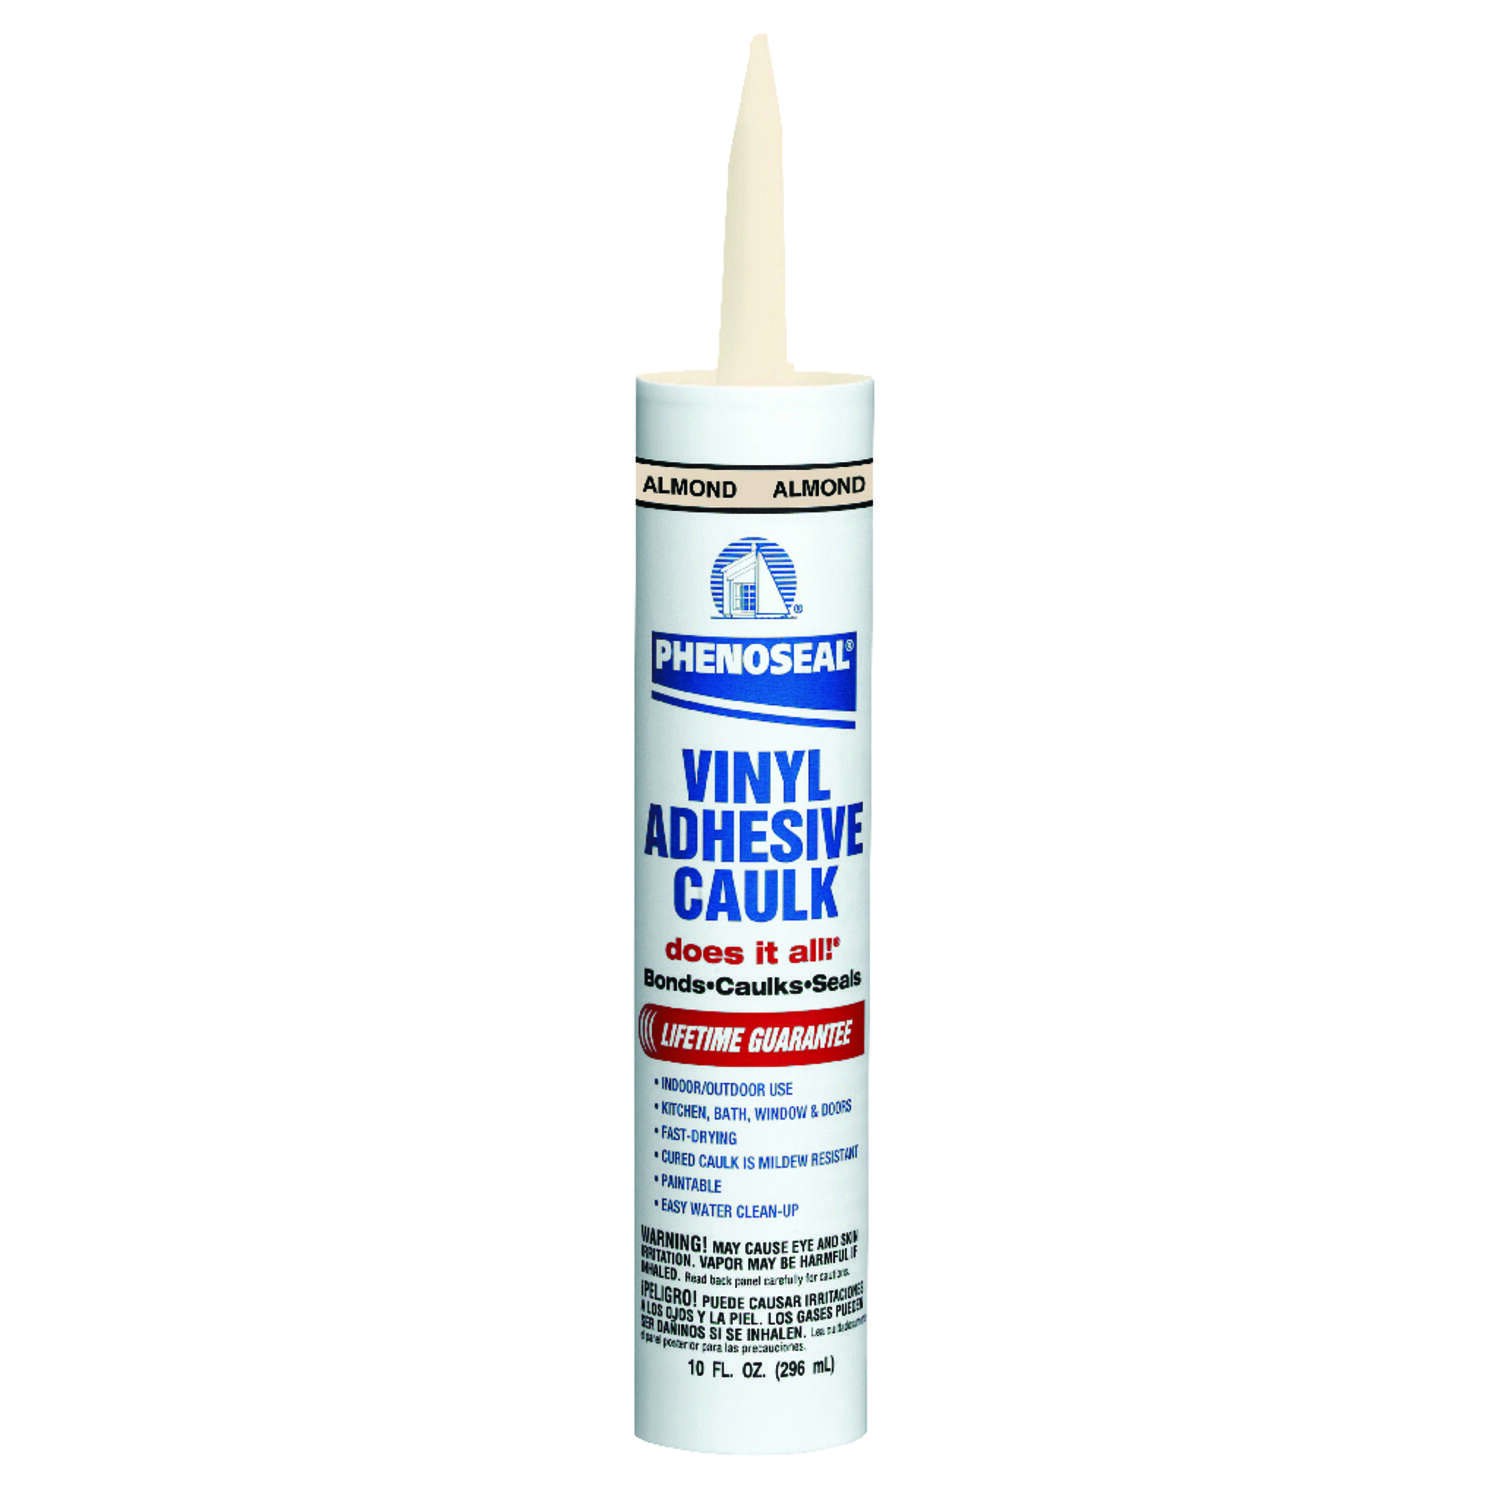 Phenoseal Almond Vinyl All Purpose Adhesive Caulk 10 oz.